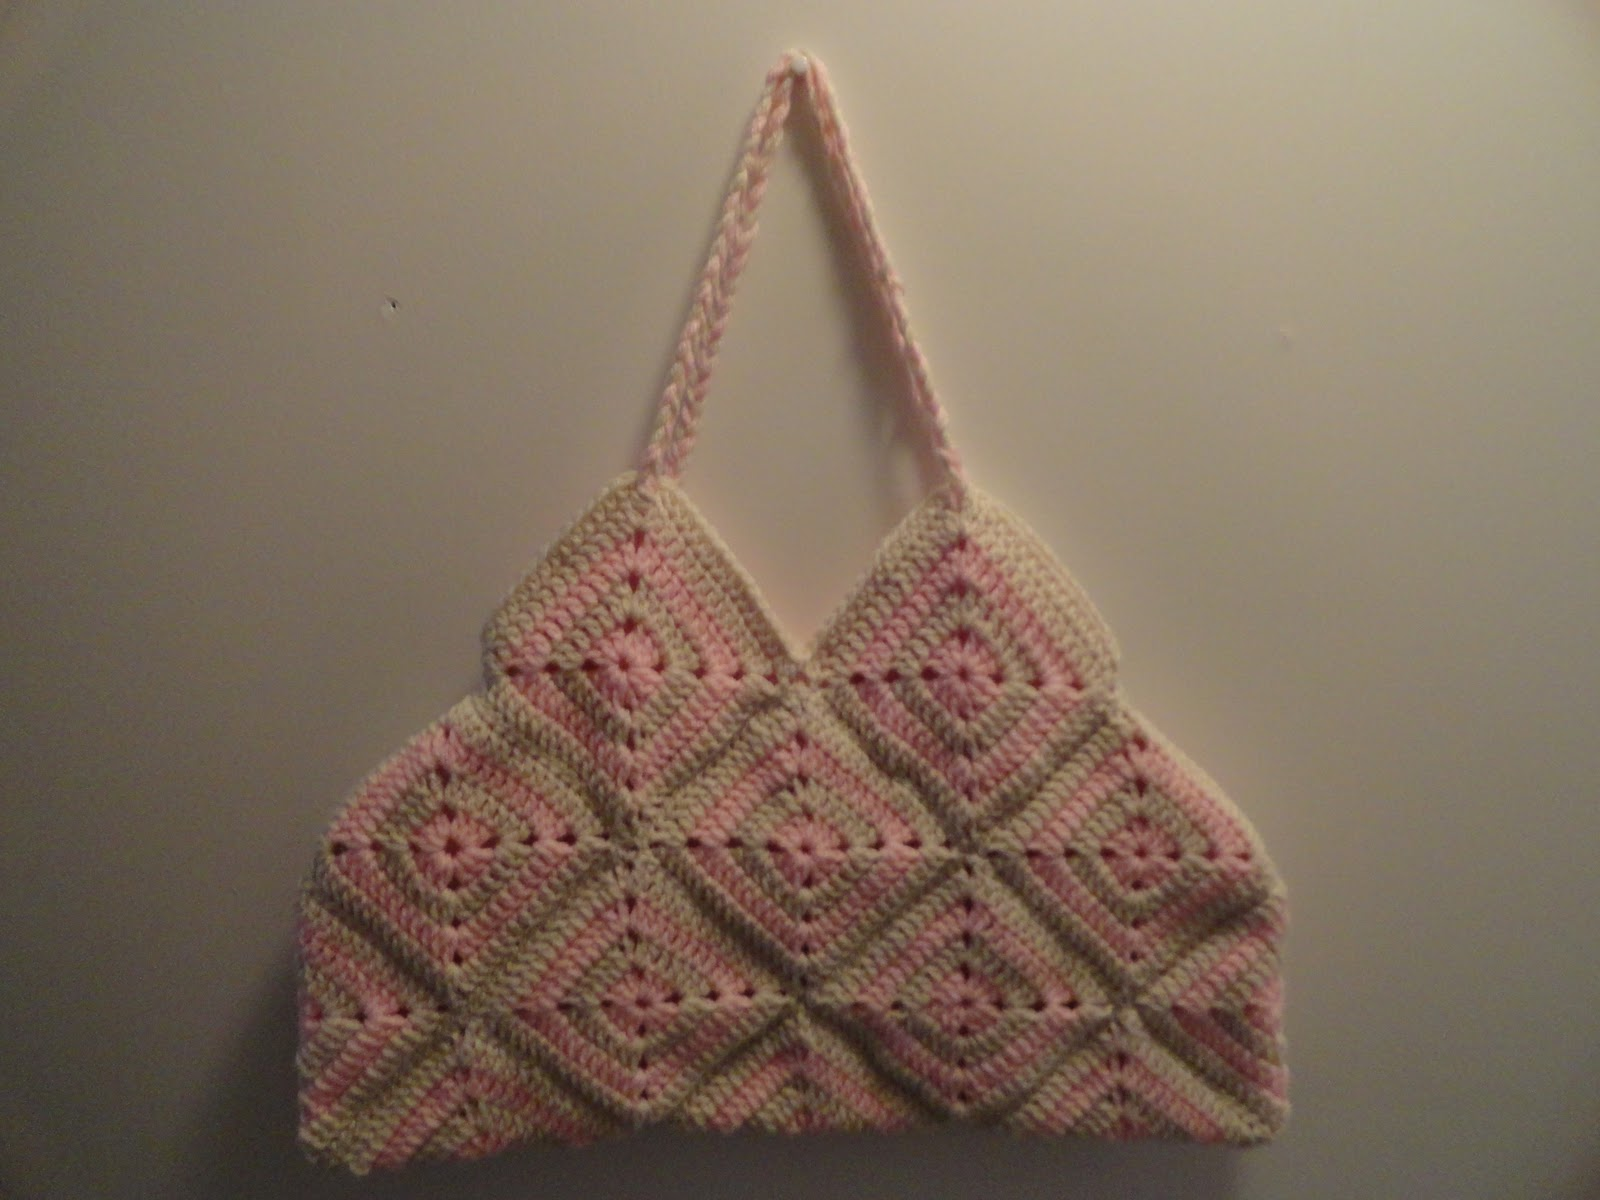 Crochet Granny Square Handbag/Purse - Blog Giveaway #1 Prize